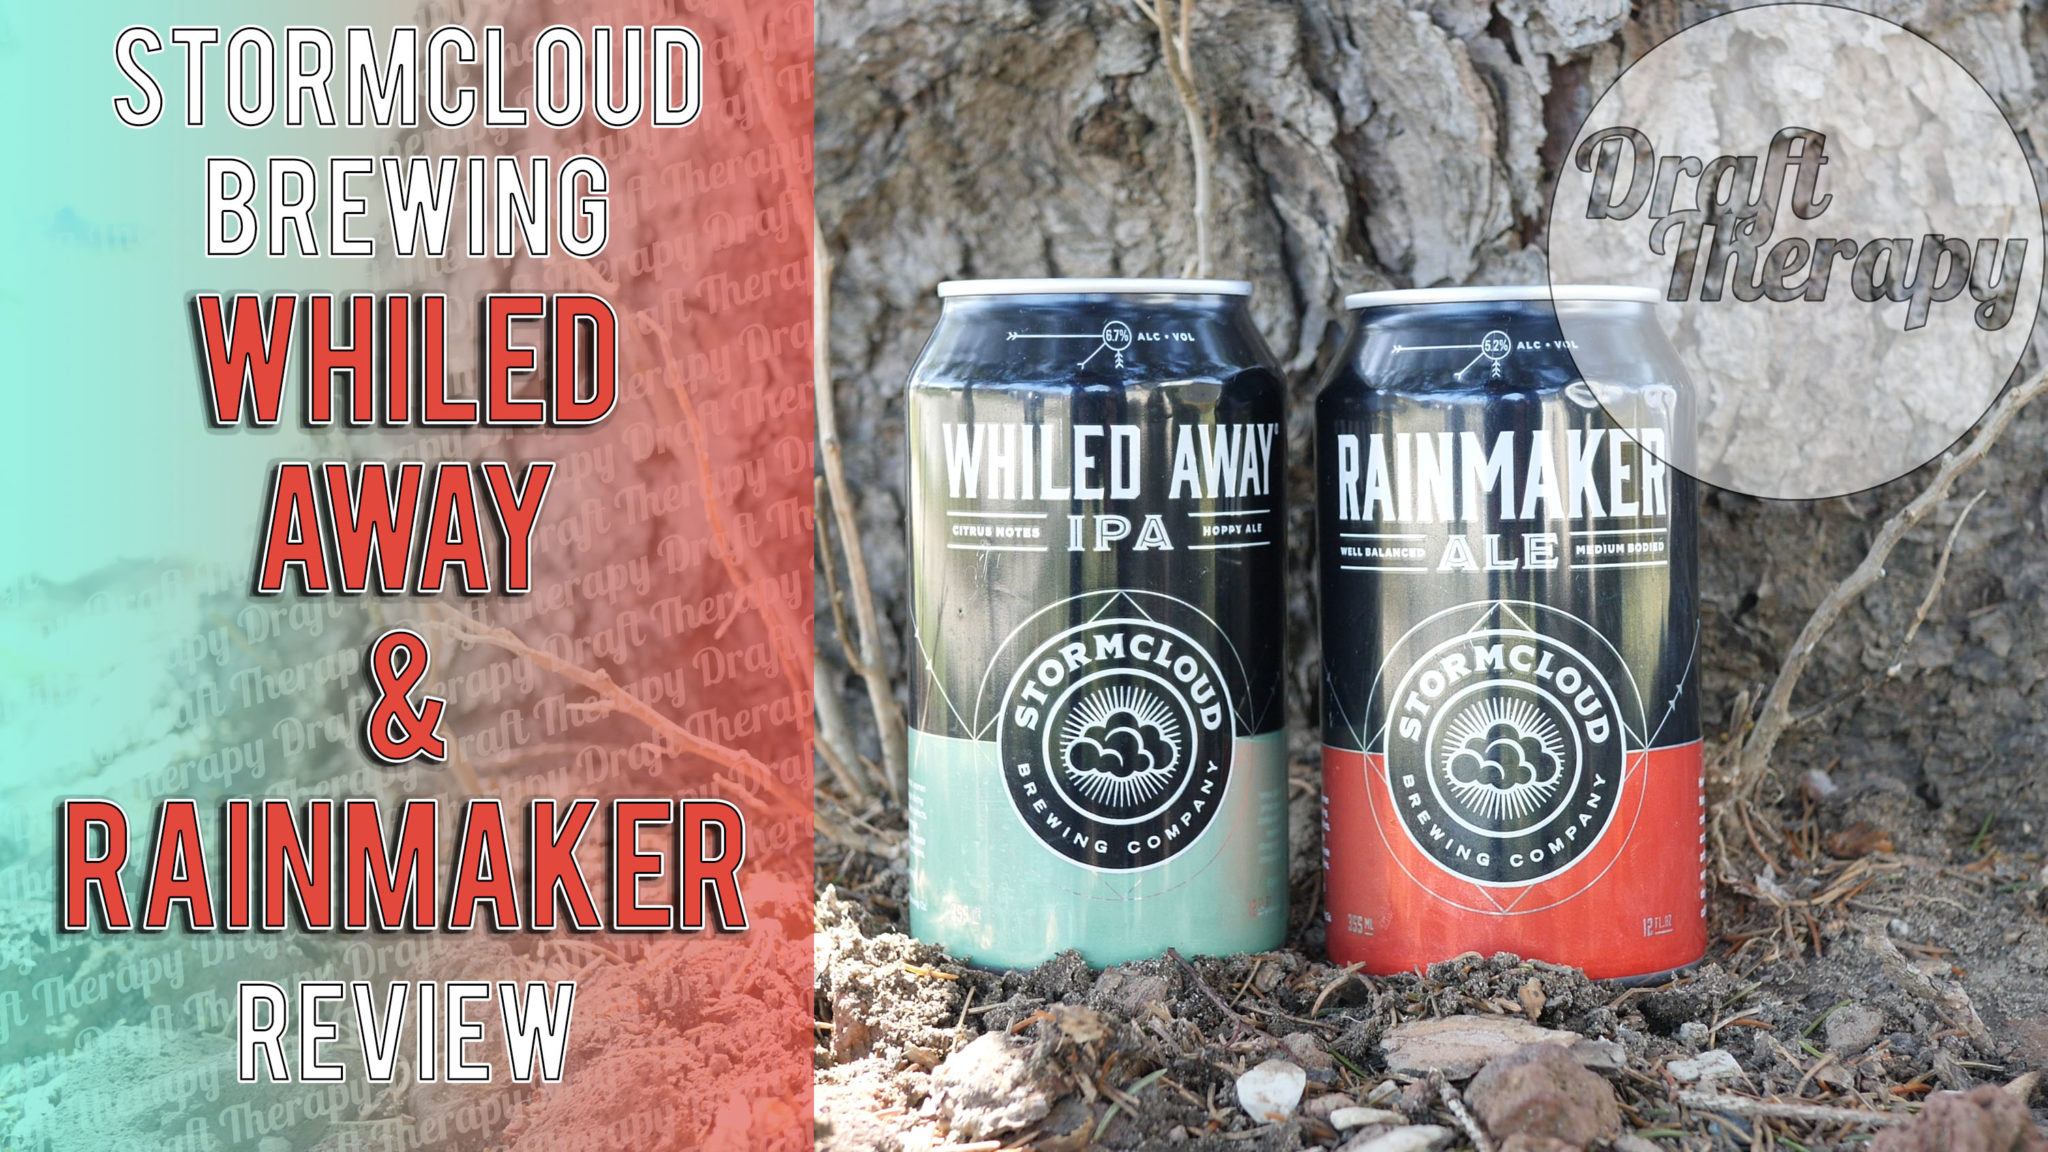 Stormcloud Brewing Company – Rainmaker Pale ale and Whiled Away IPA